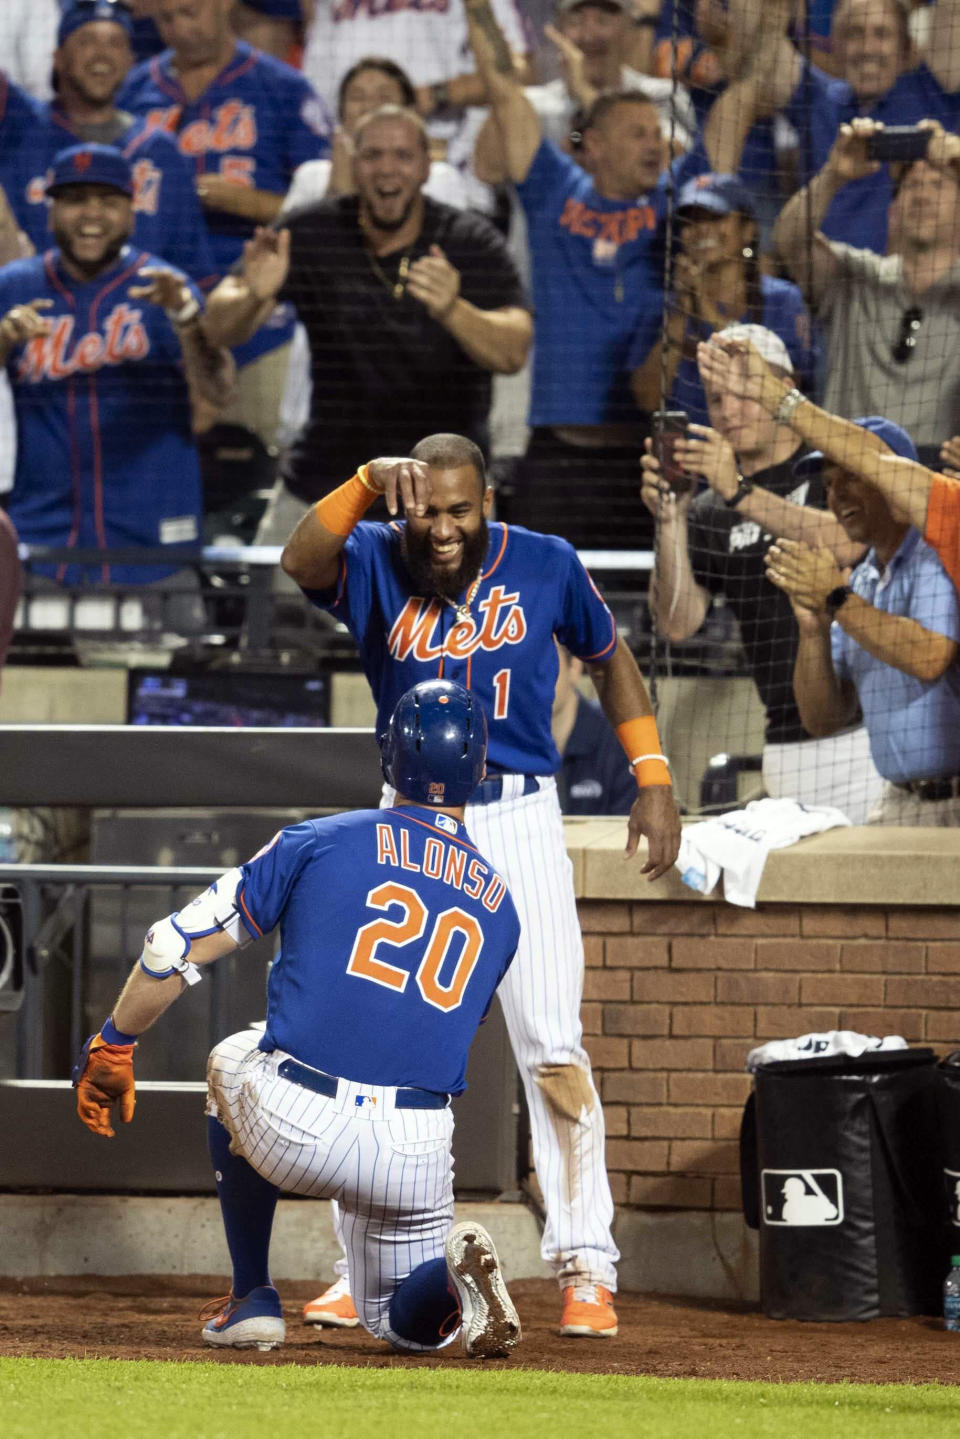 New York Mets' Pete Alonso (20) celebrates his home run with Amed Rosario (1) during the seventh inning in the second game of a baseball doubleheader against the Miami Marlins, Monday, Aug. 5, 2019, in New York. (AP Photo/Mary Altaffer)